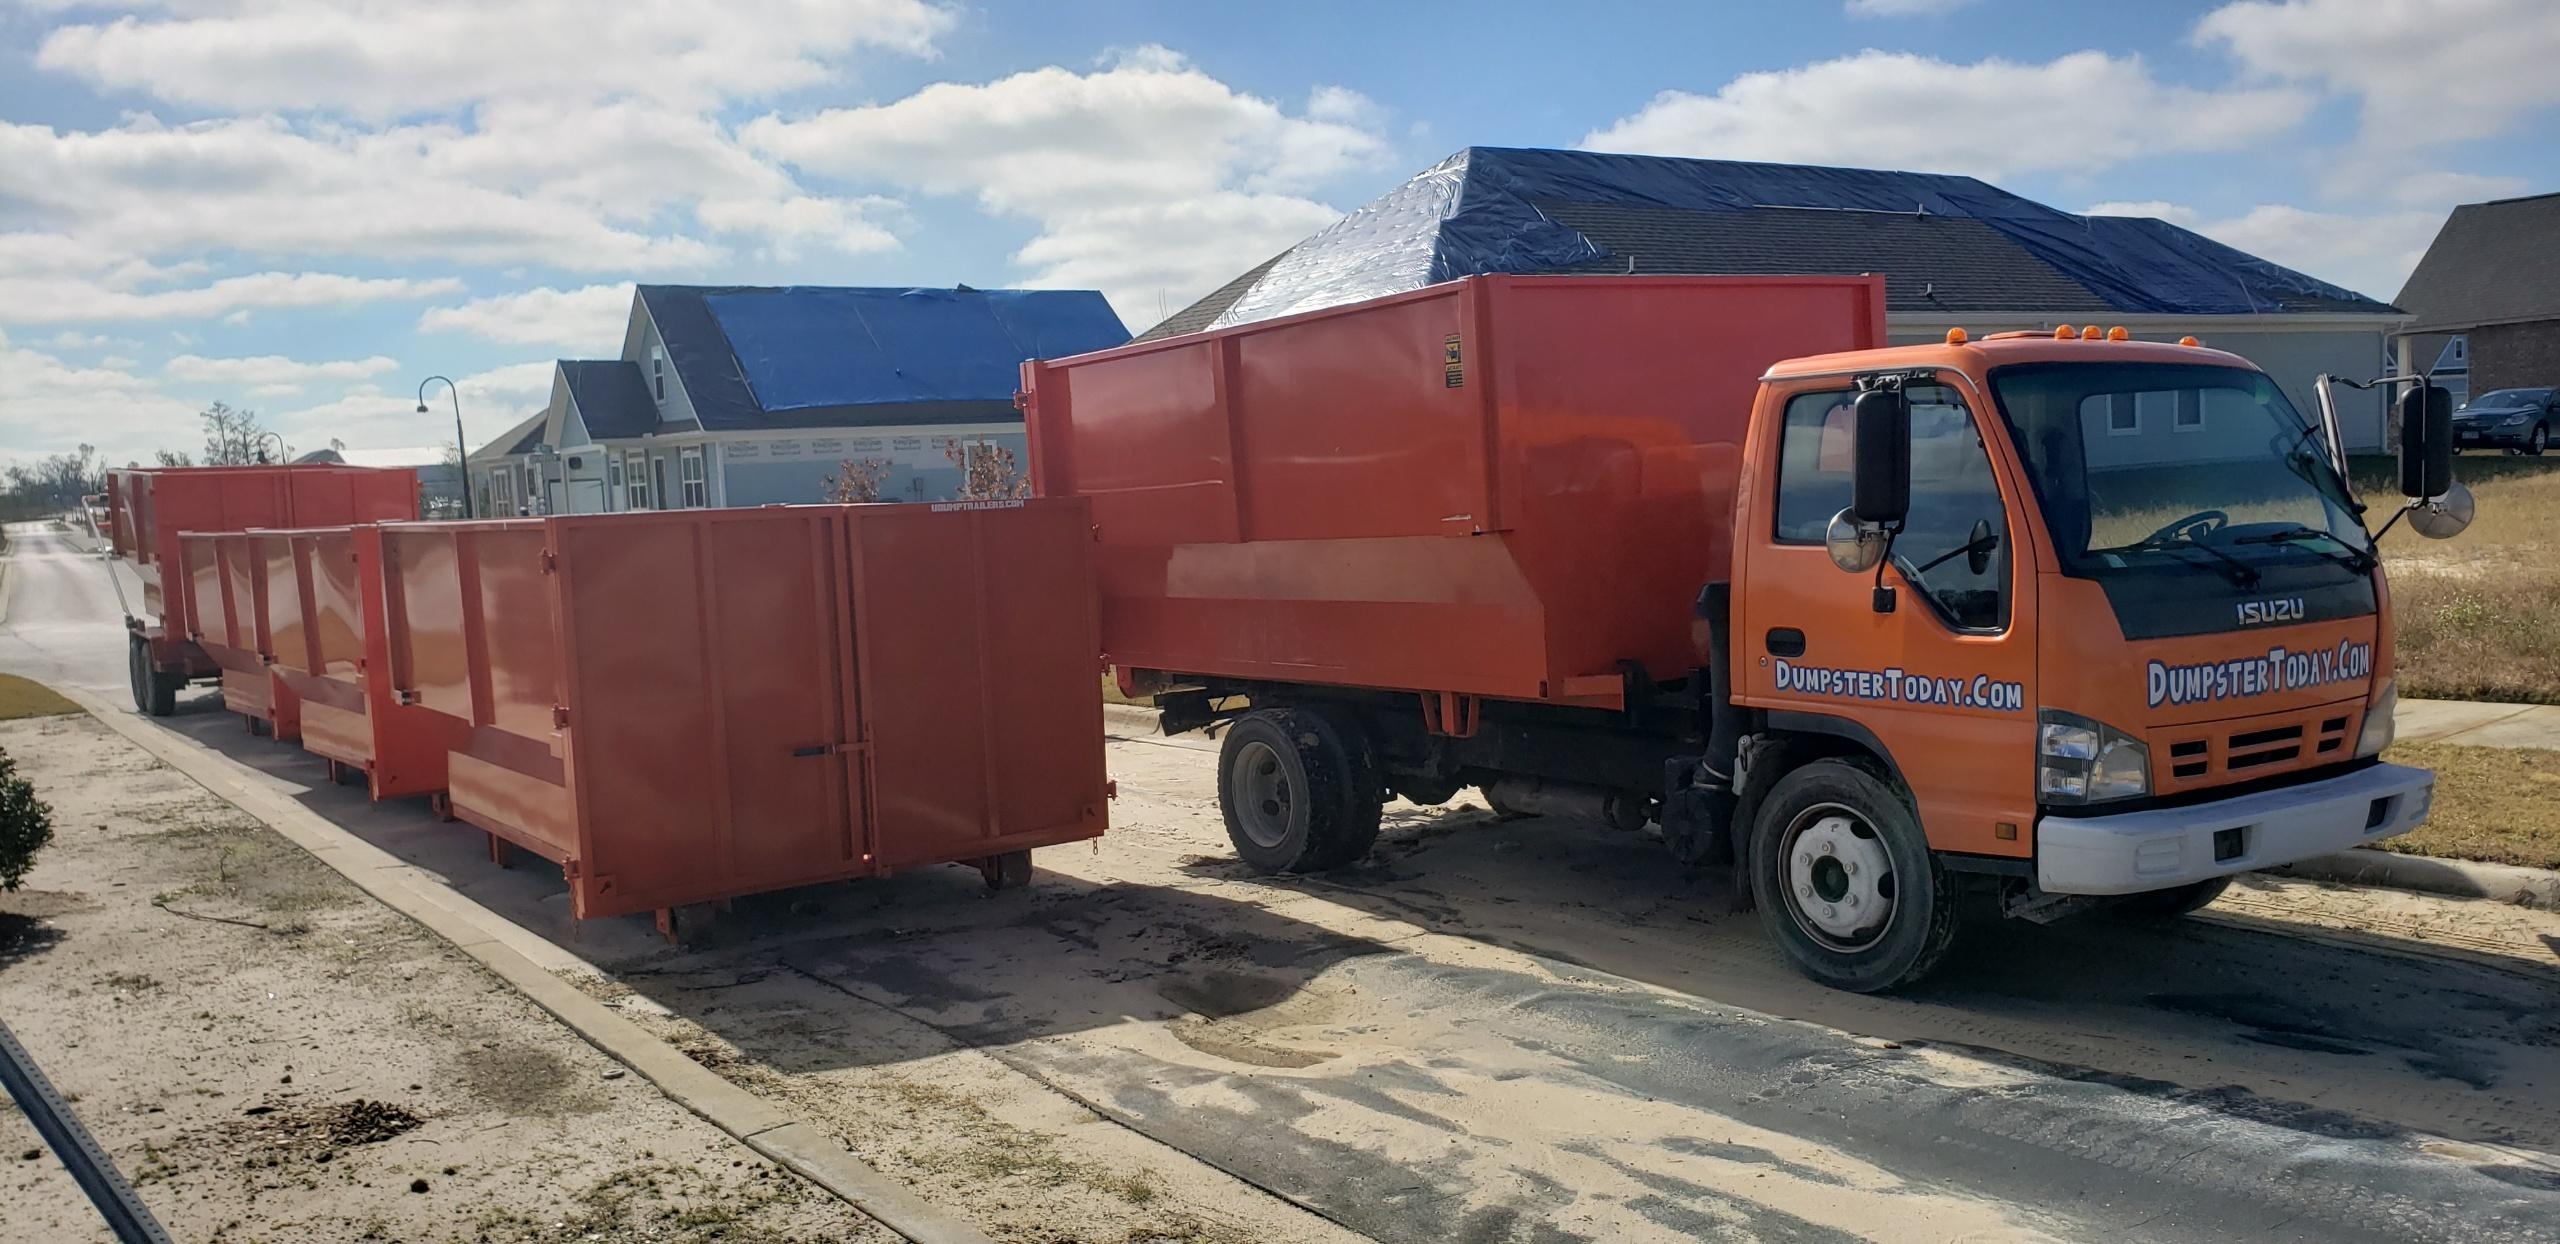 Dumpster Today Fast Dumpster Delivery Orlando